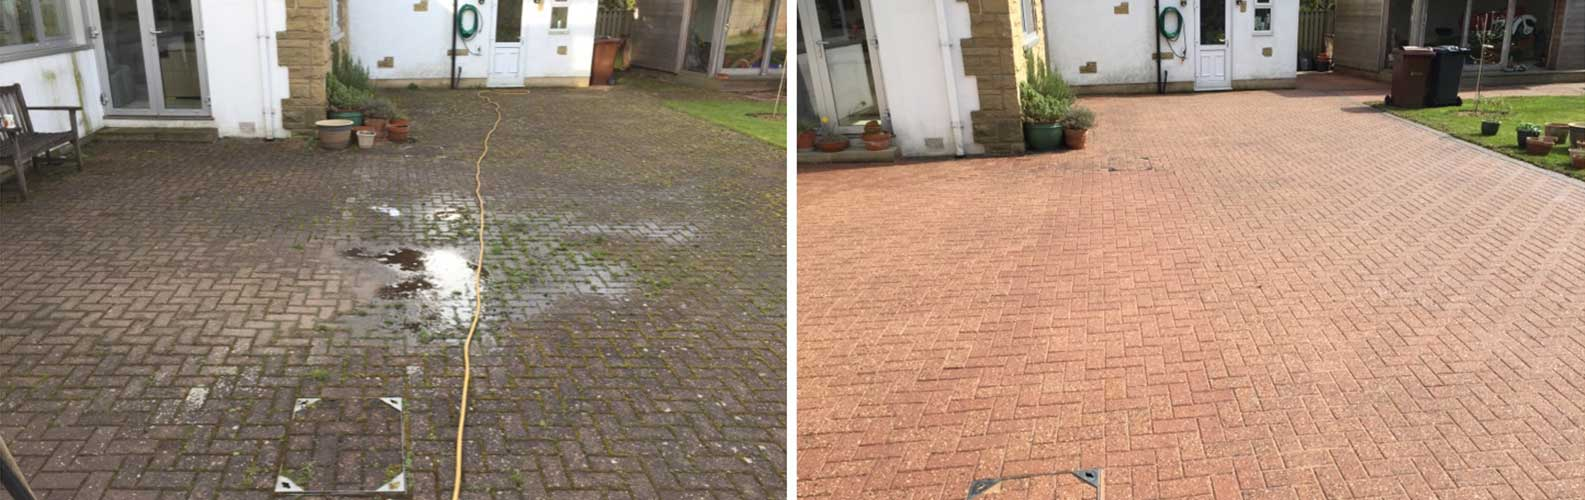 driveway-and-patio-sealing